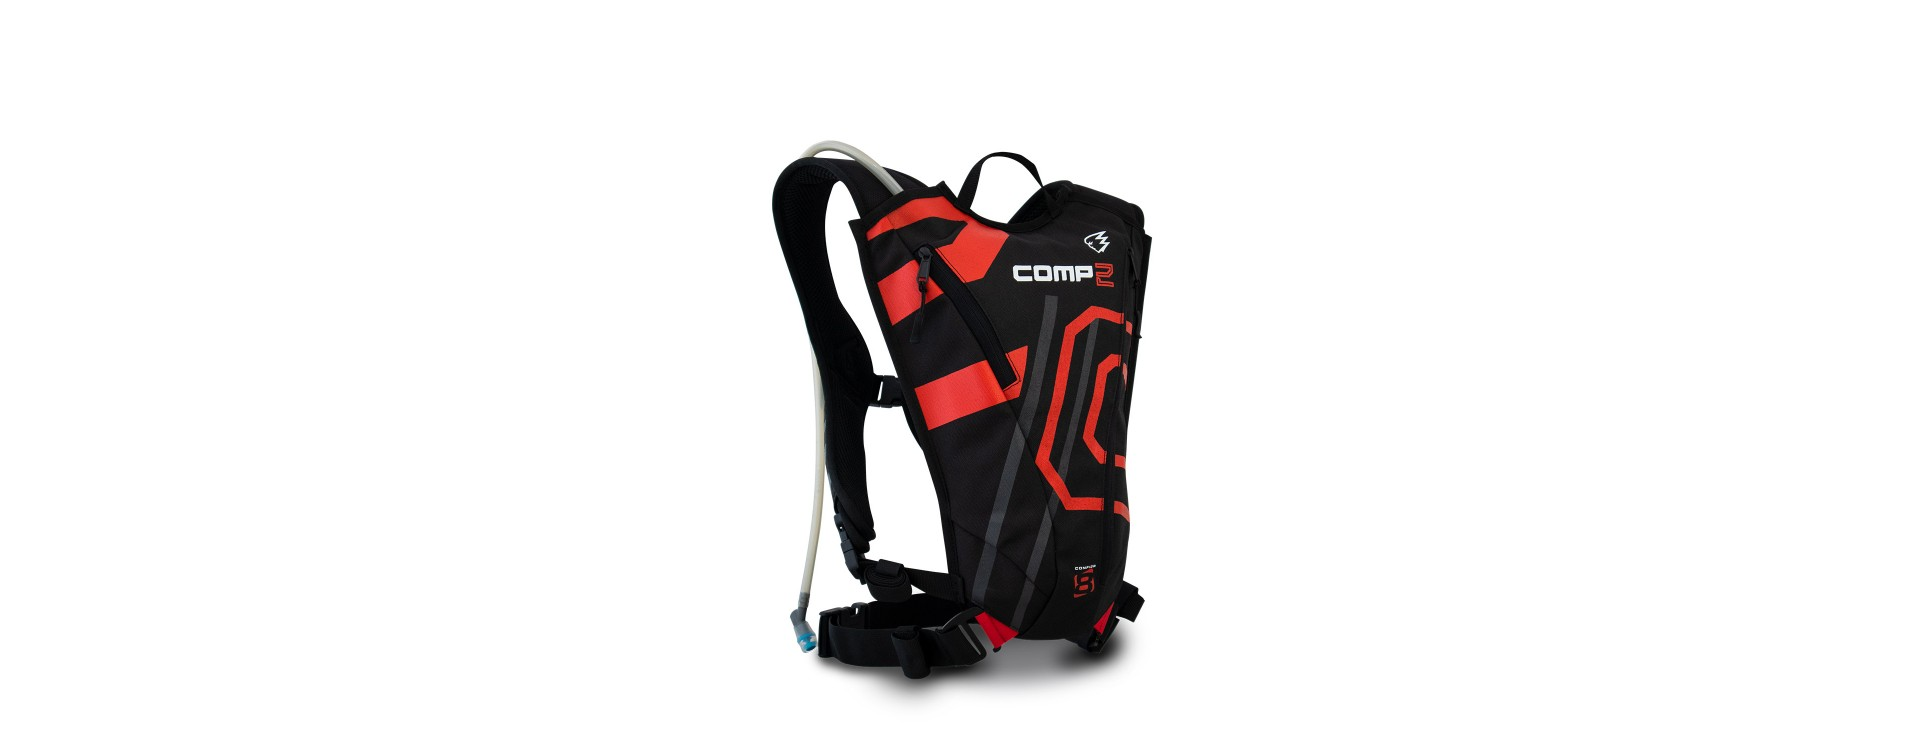 Zacspeed Hydration Pack COMP Now In Stock